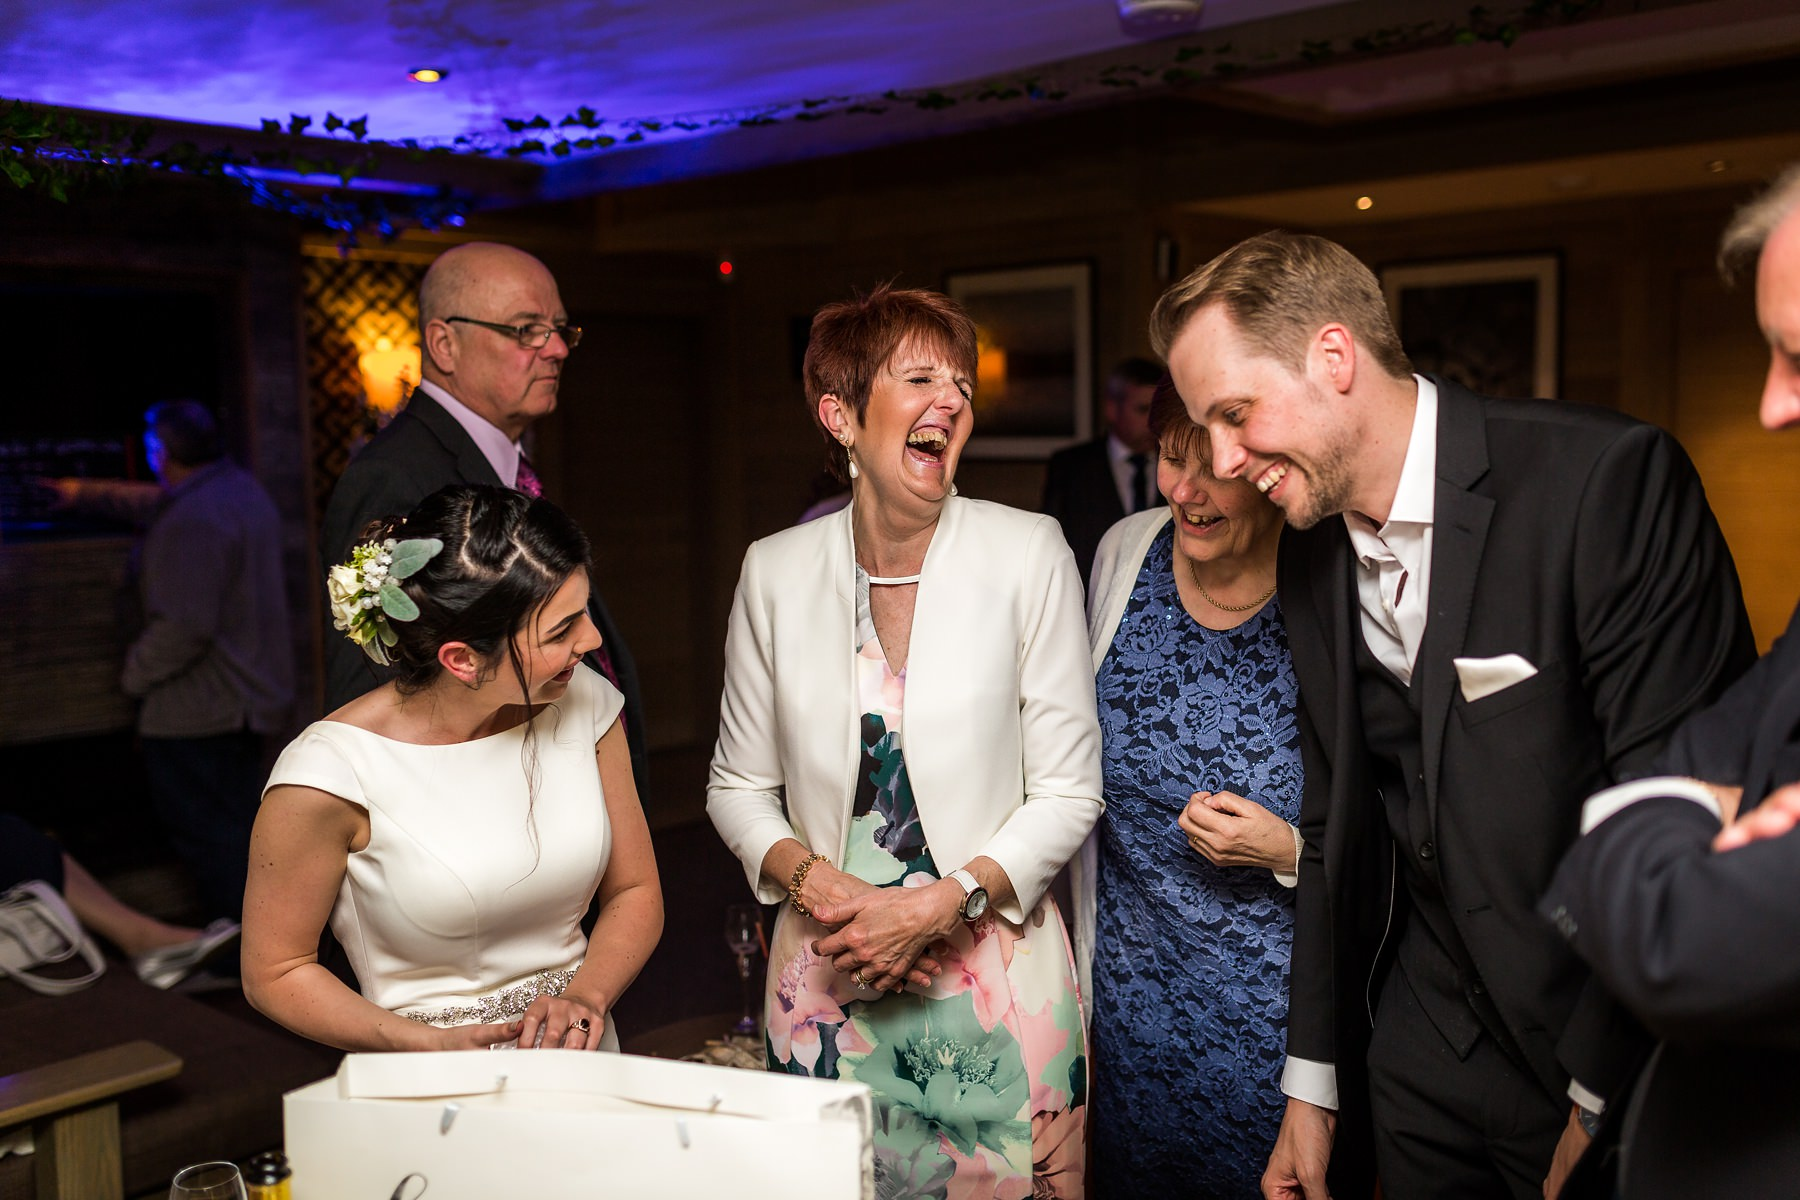 guests laughing together